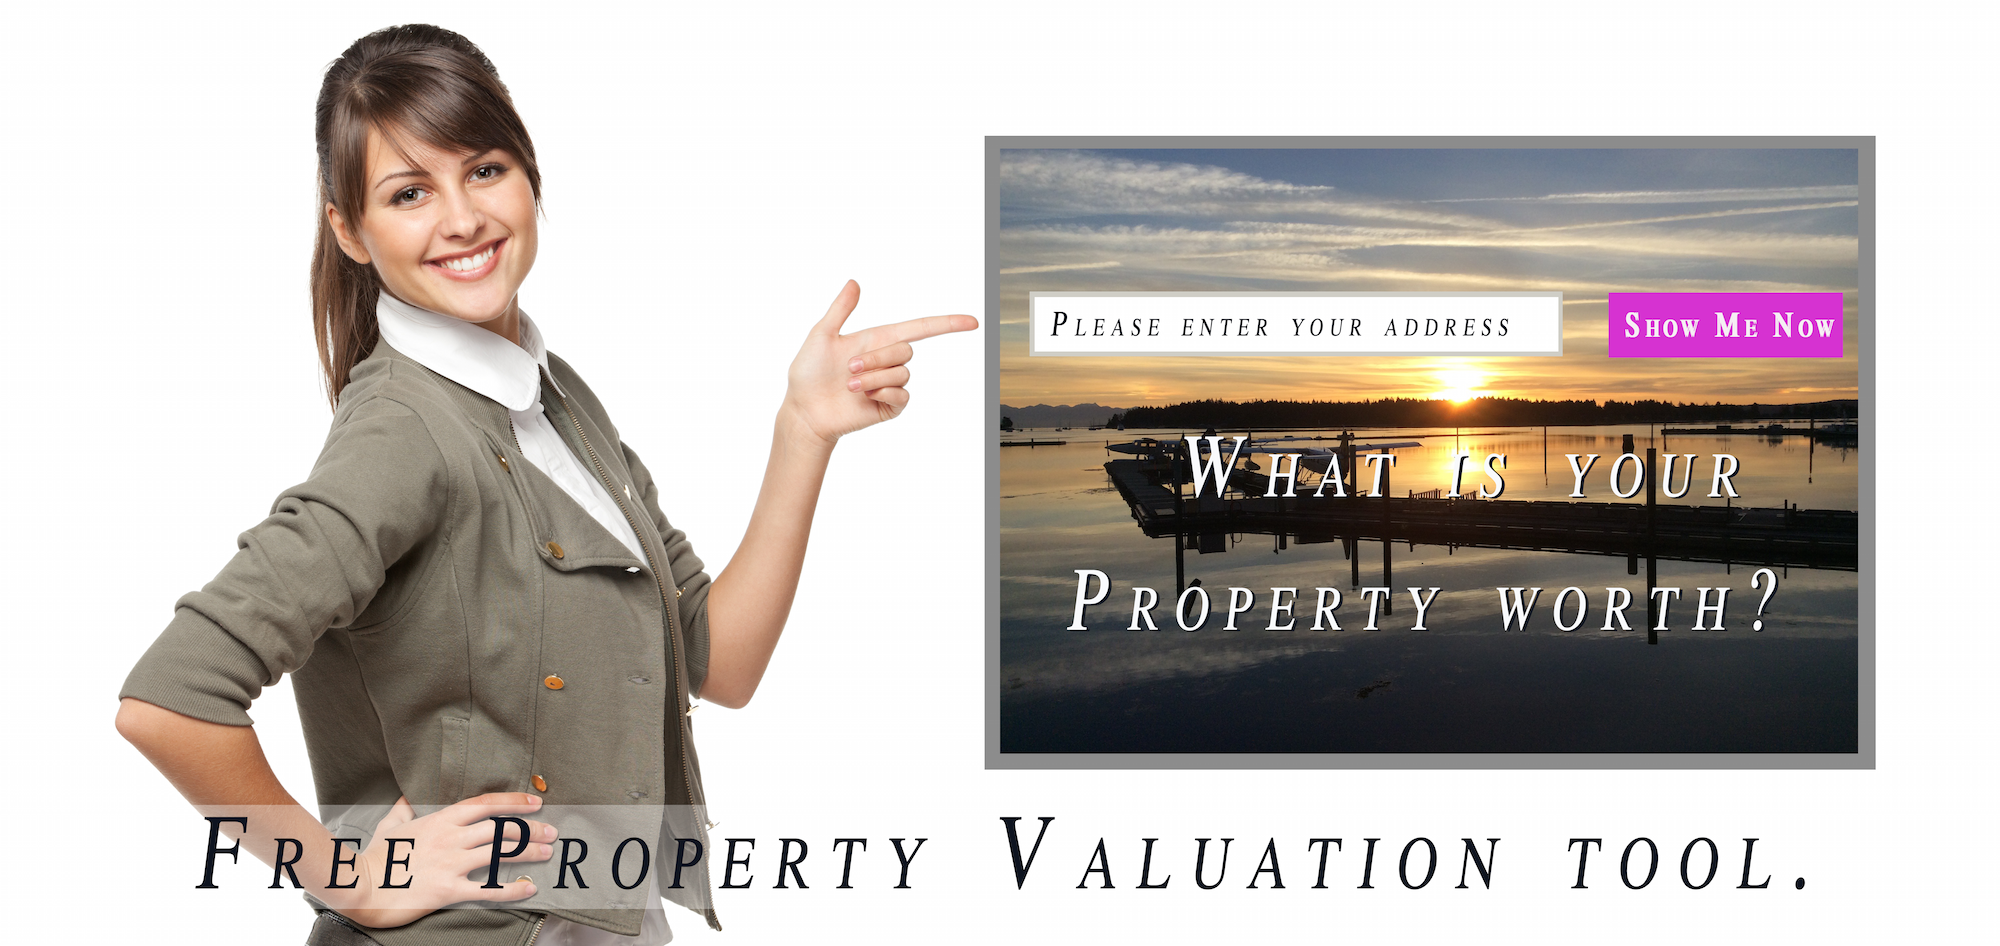 Free Property Valuation Tool